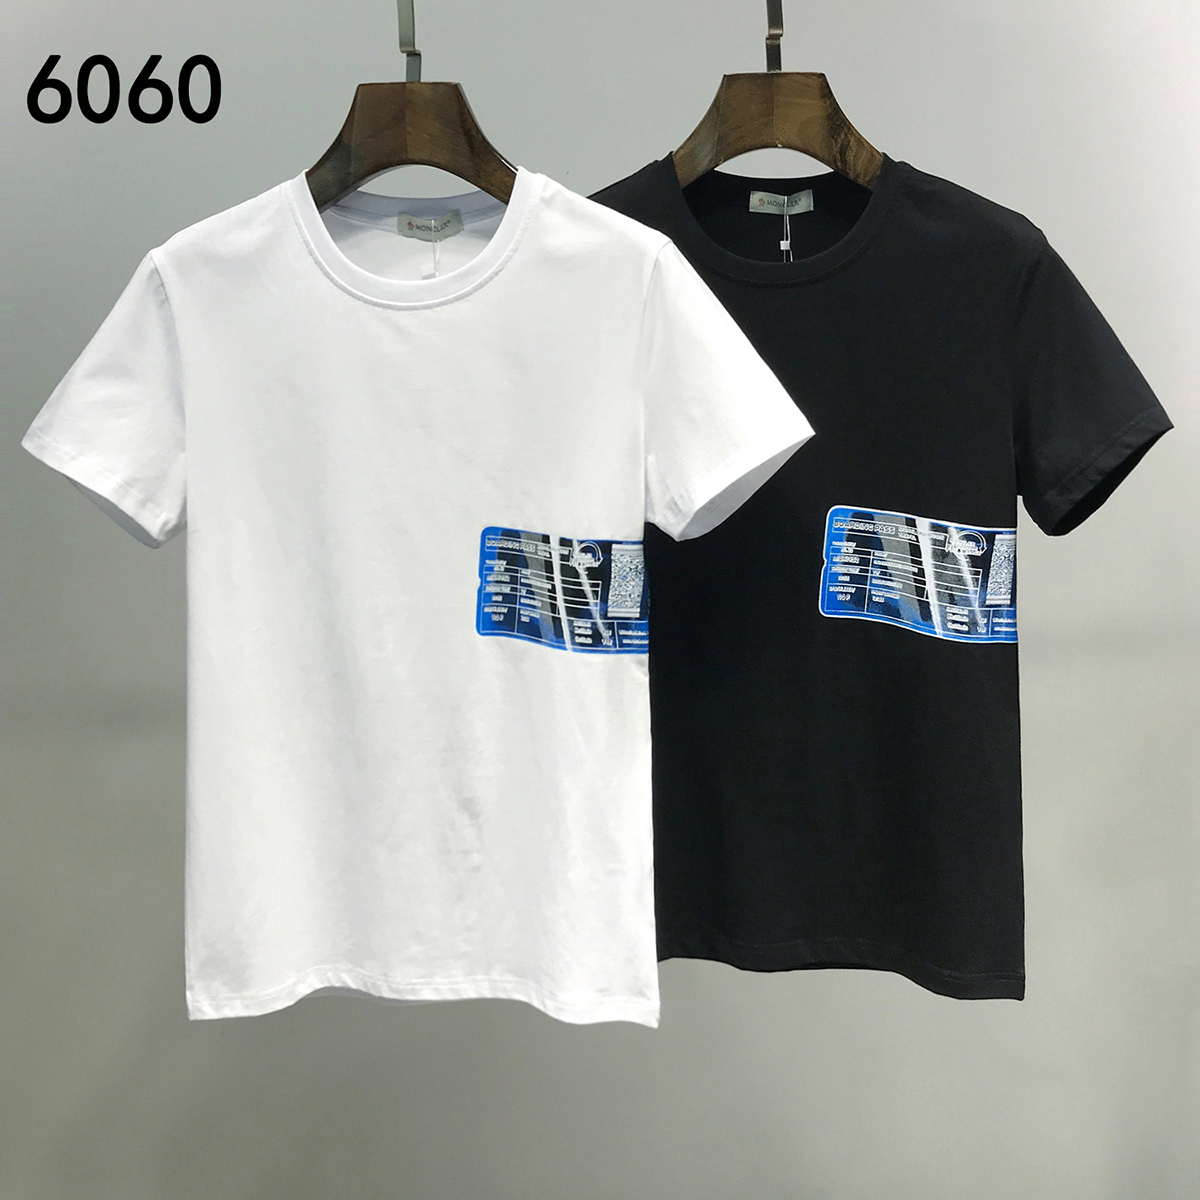 Hip hop Summer Original Design Men And Women T Shirts Pure Cotton And Short Sleeves T Shirt Size M-3XL Elegant And Perfect